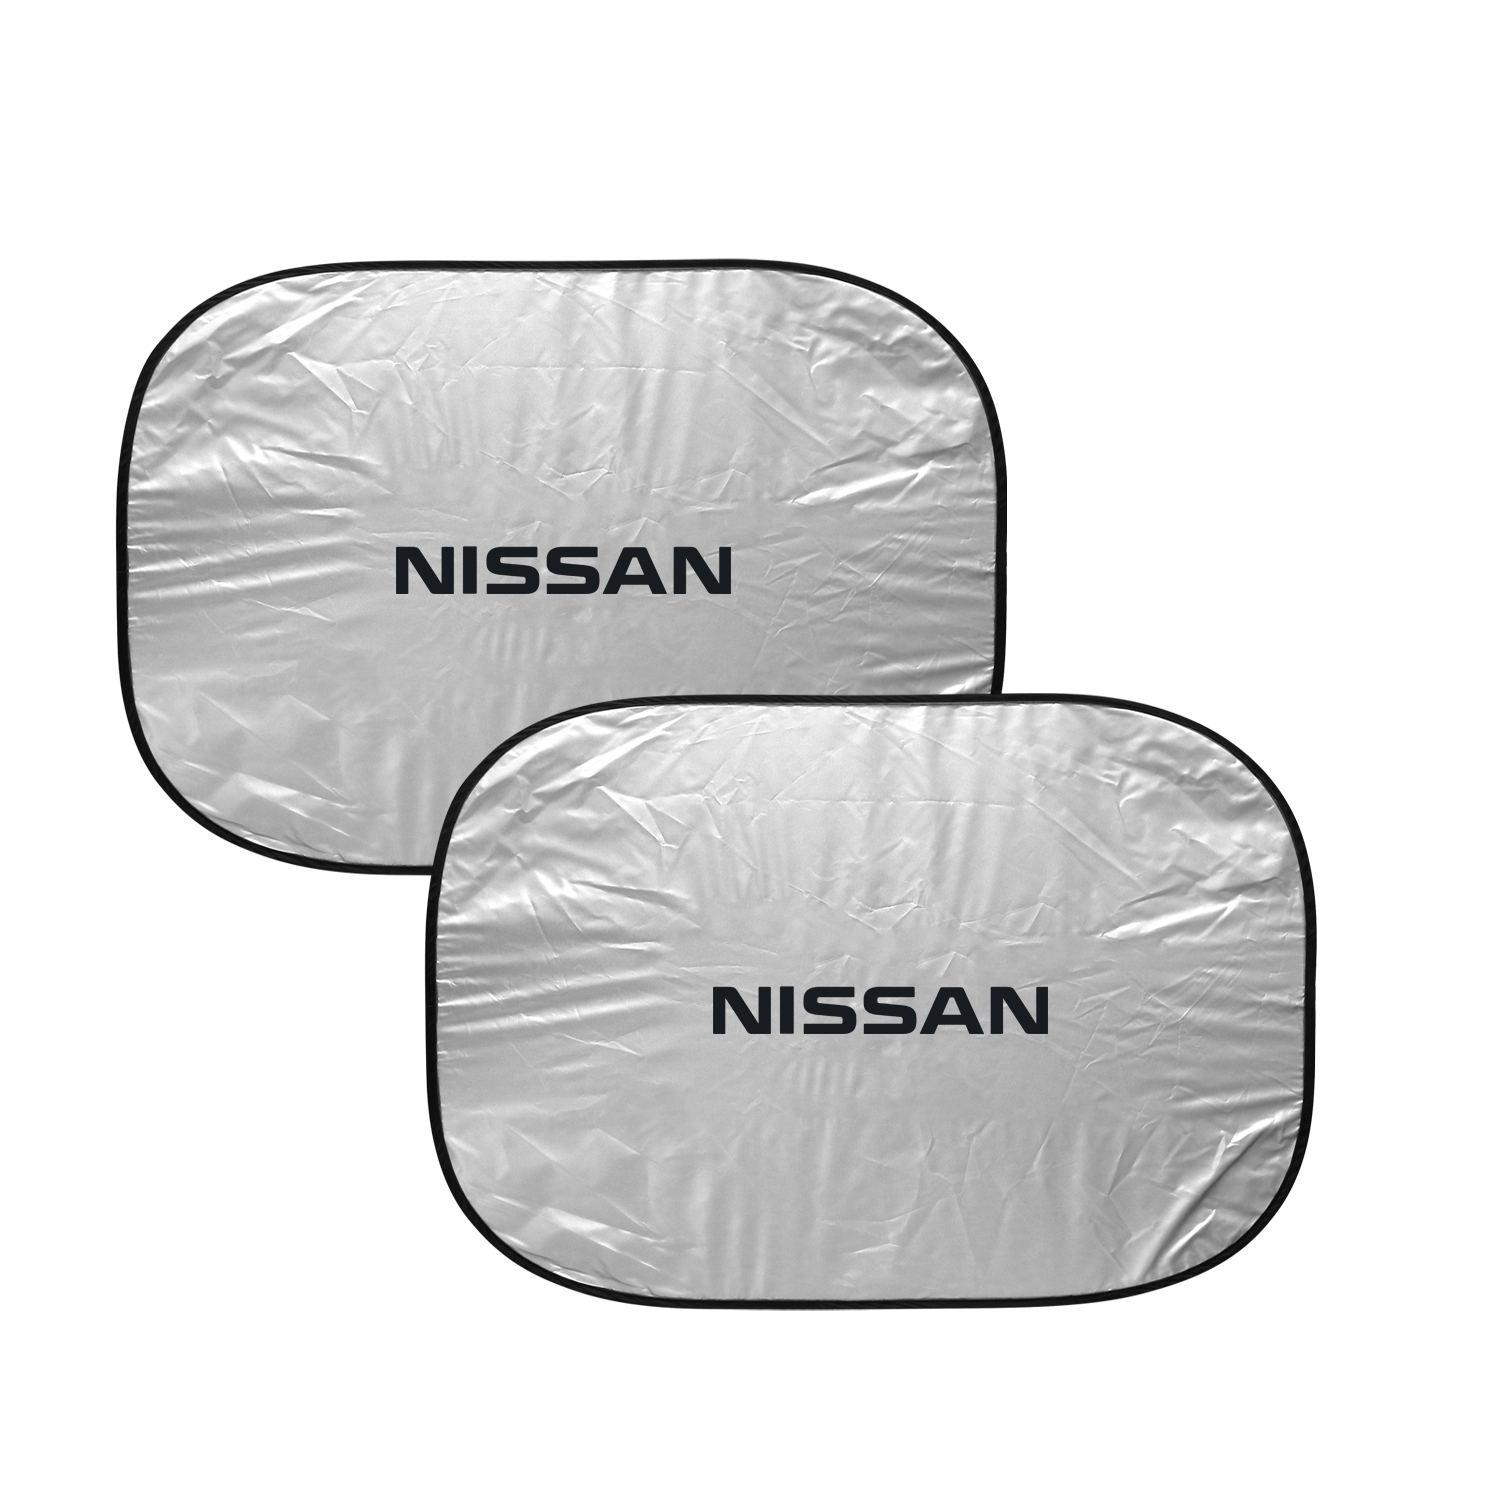 Nissan Dual Panels Easy Folding Windshield Sun Shade for Cars and Small SUVs